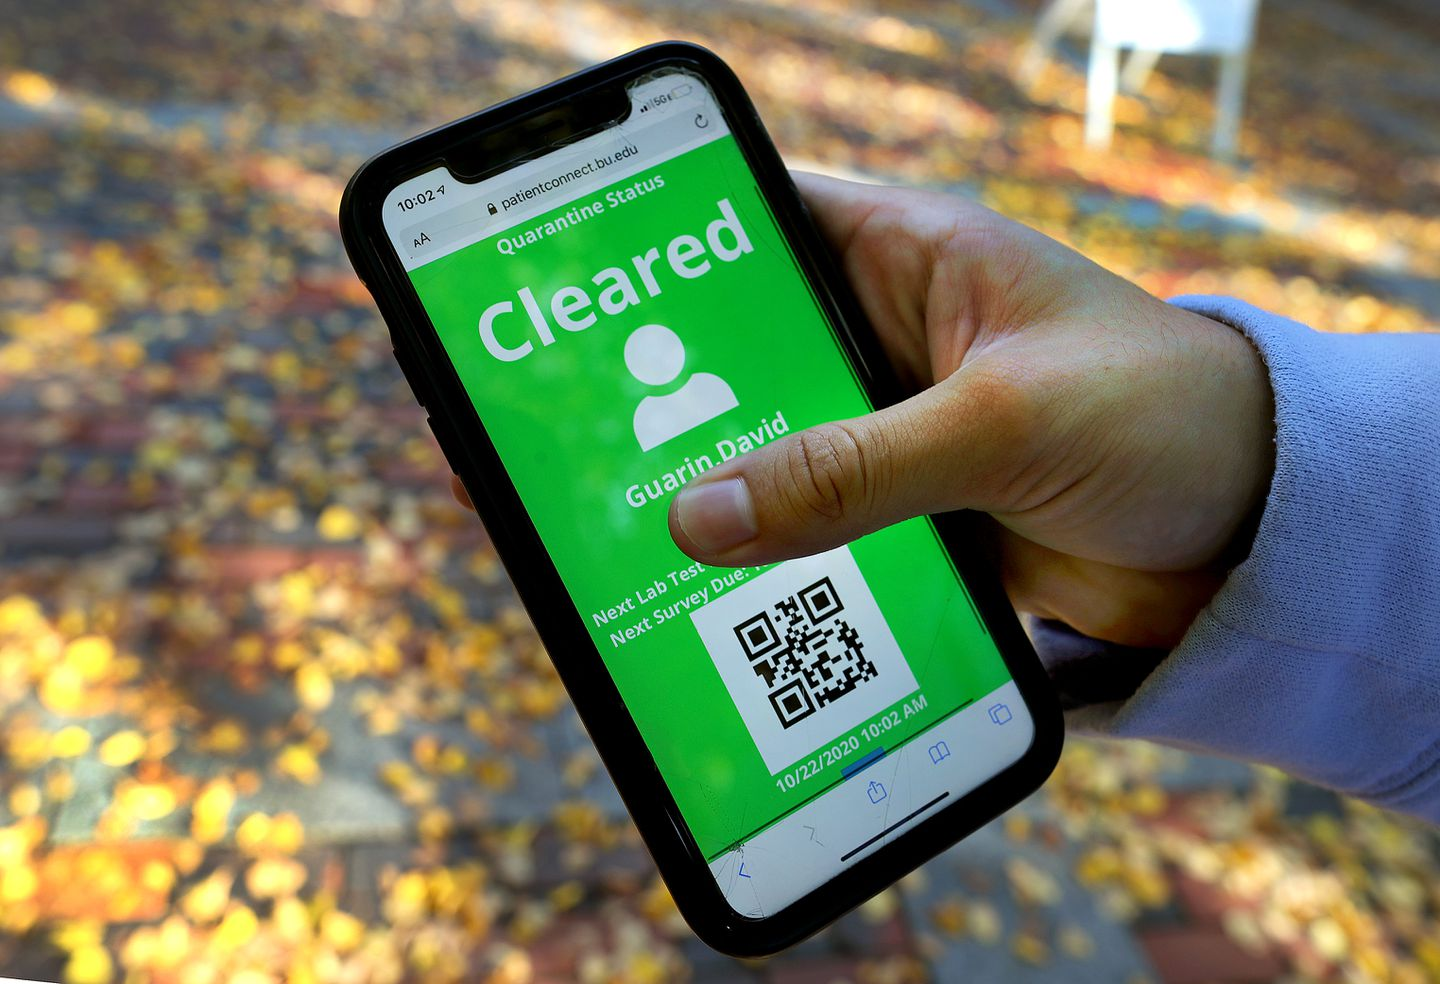 Starting Thursday, BU students are required to show a green badge – that can be downloaded on a school website using their name and student ID – that they have tested negative for COVID-19 before they can enter certain public spaces on campus like the dining hall.